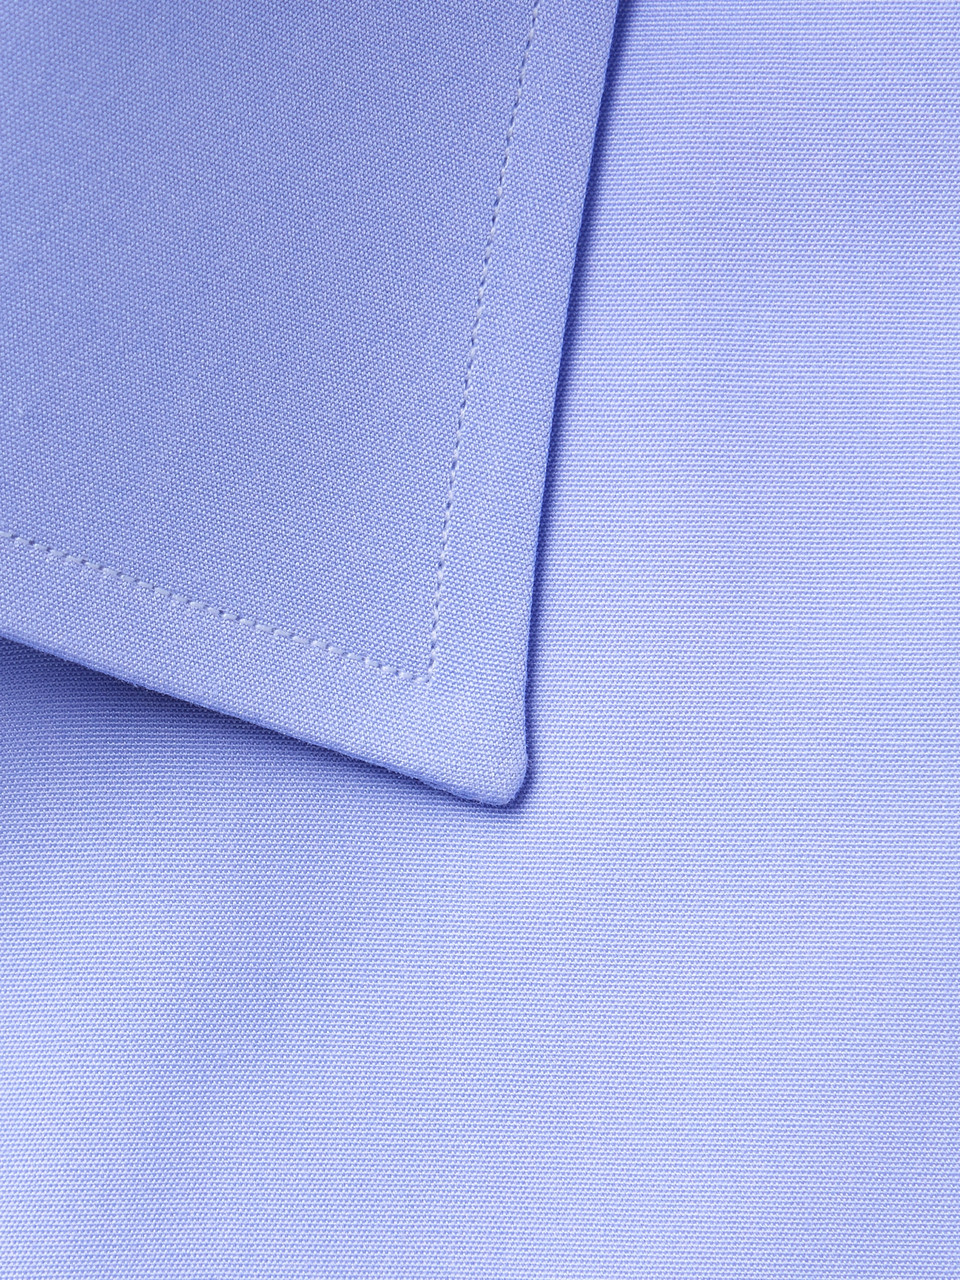 TOM FORD Blue Slim-Fit Cotton-Poplin Shirt